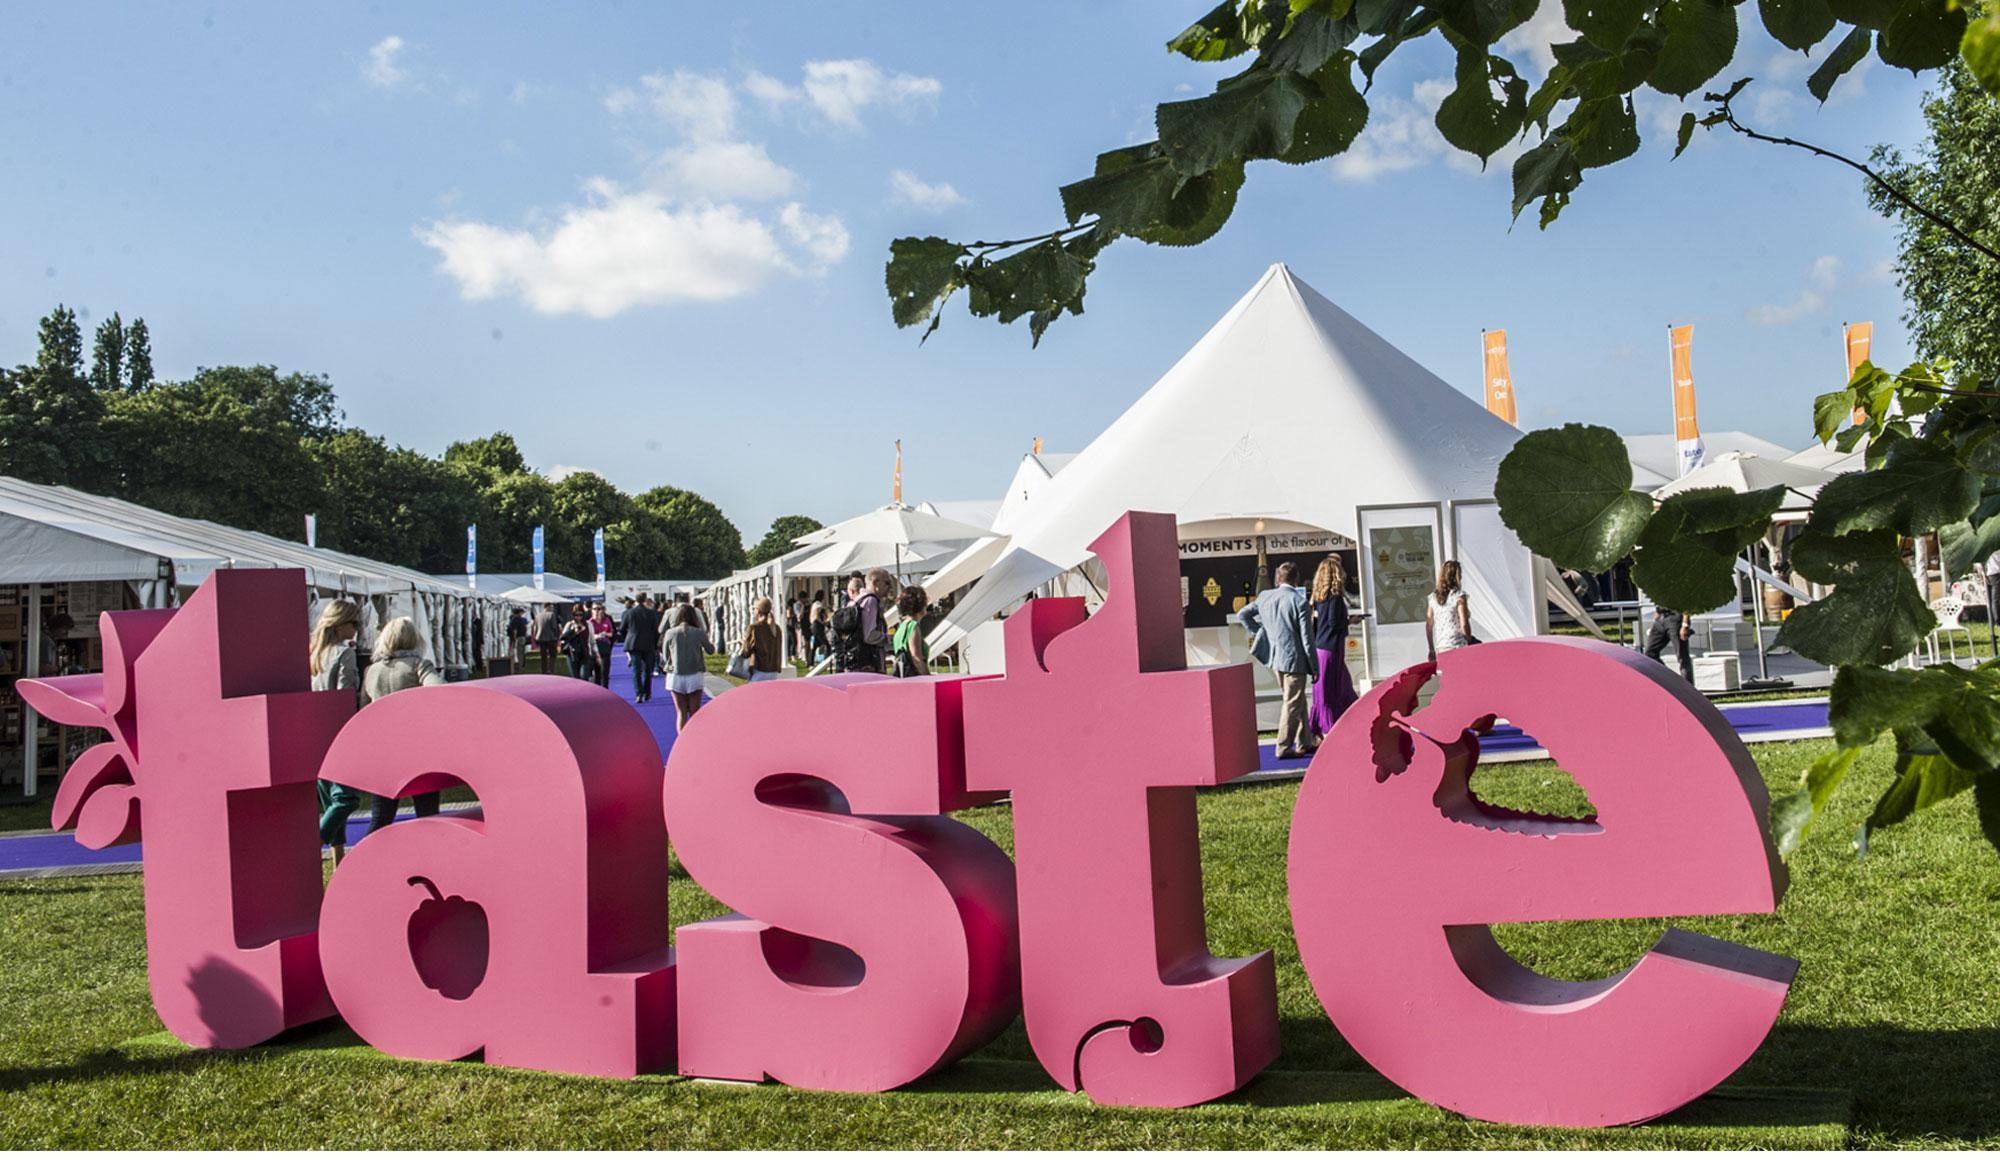 Taste of London is the definitive showcase of the capital's best restaurants, top chefs and leading food and drink brands.